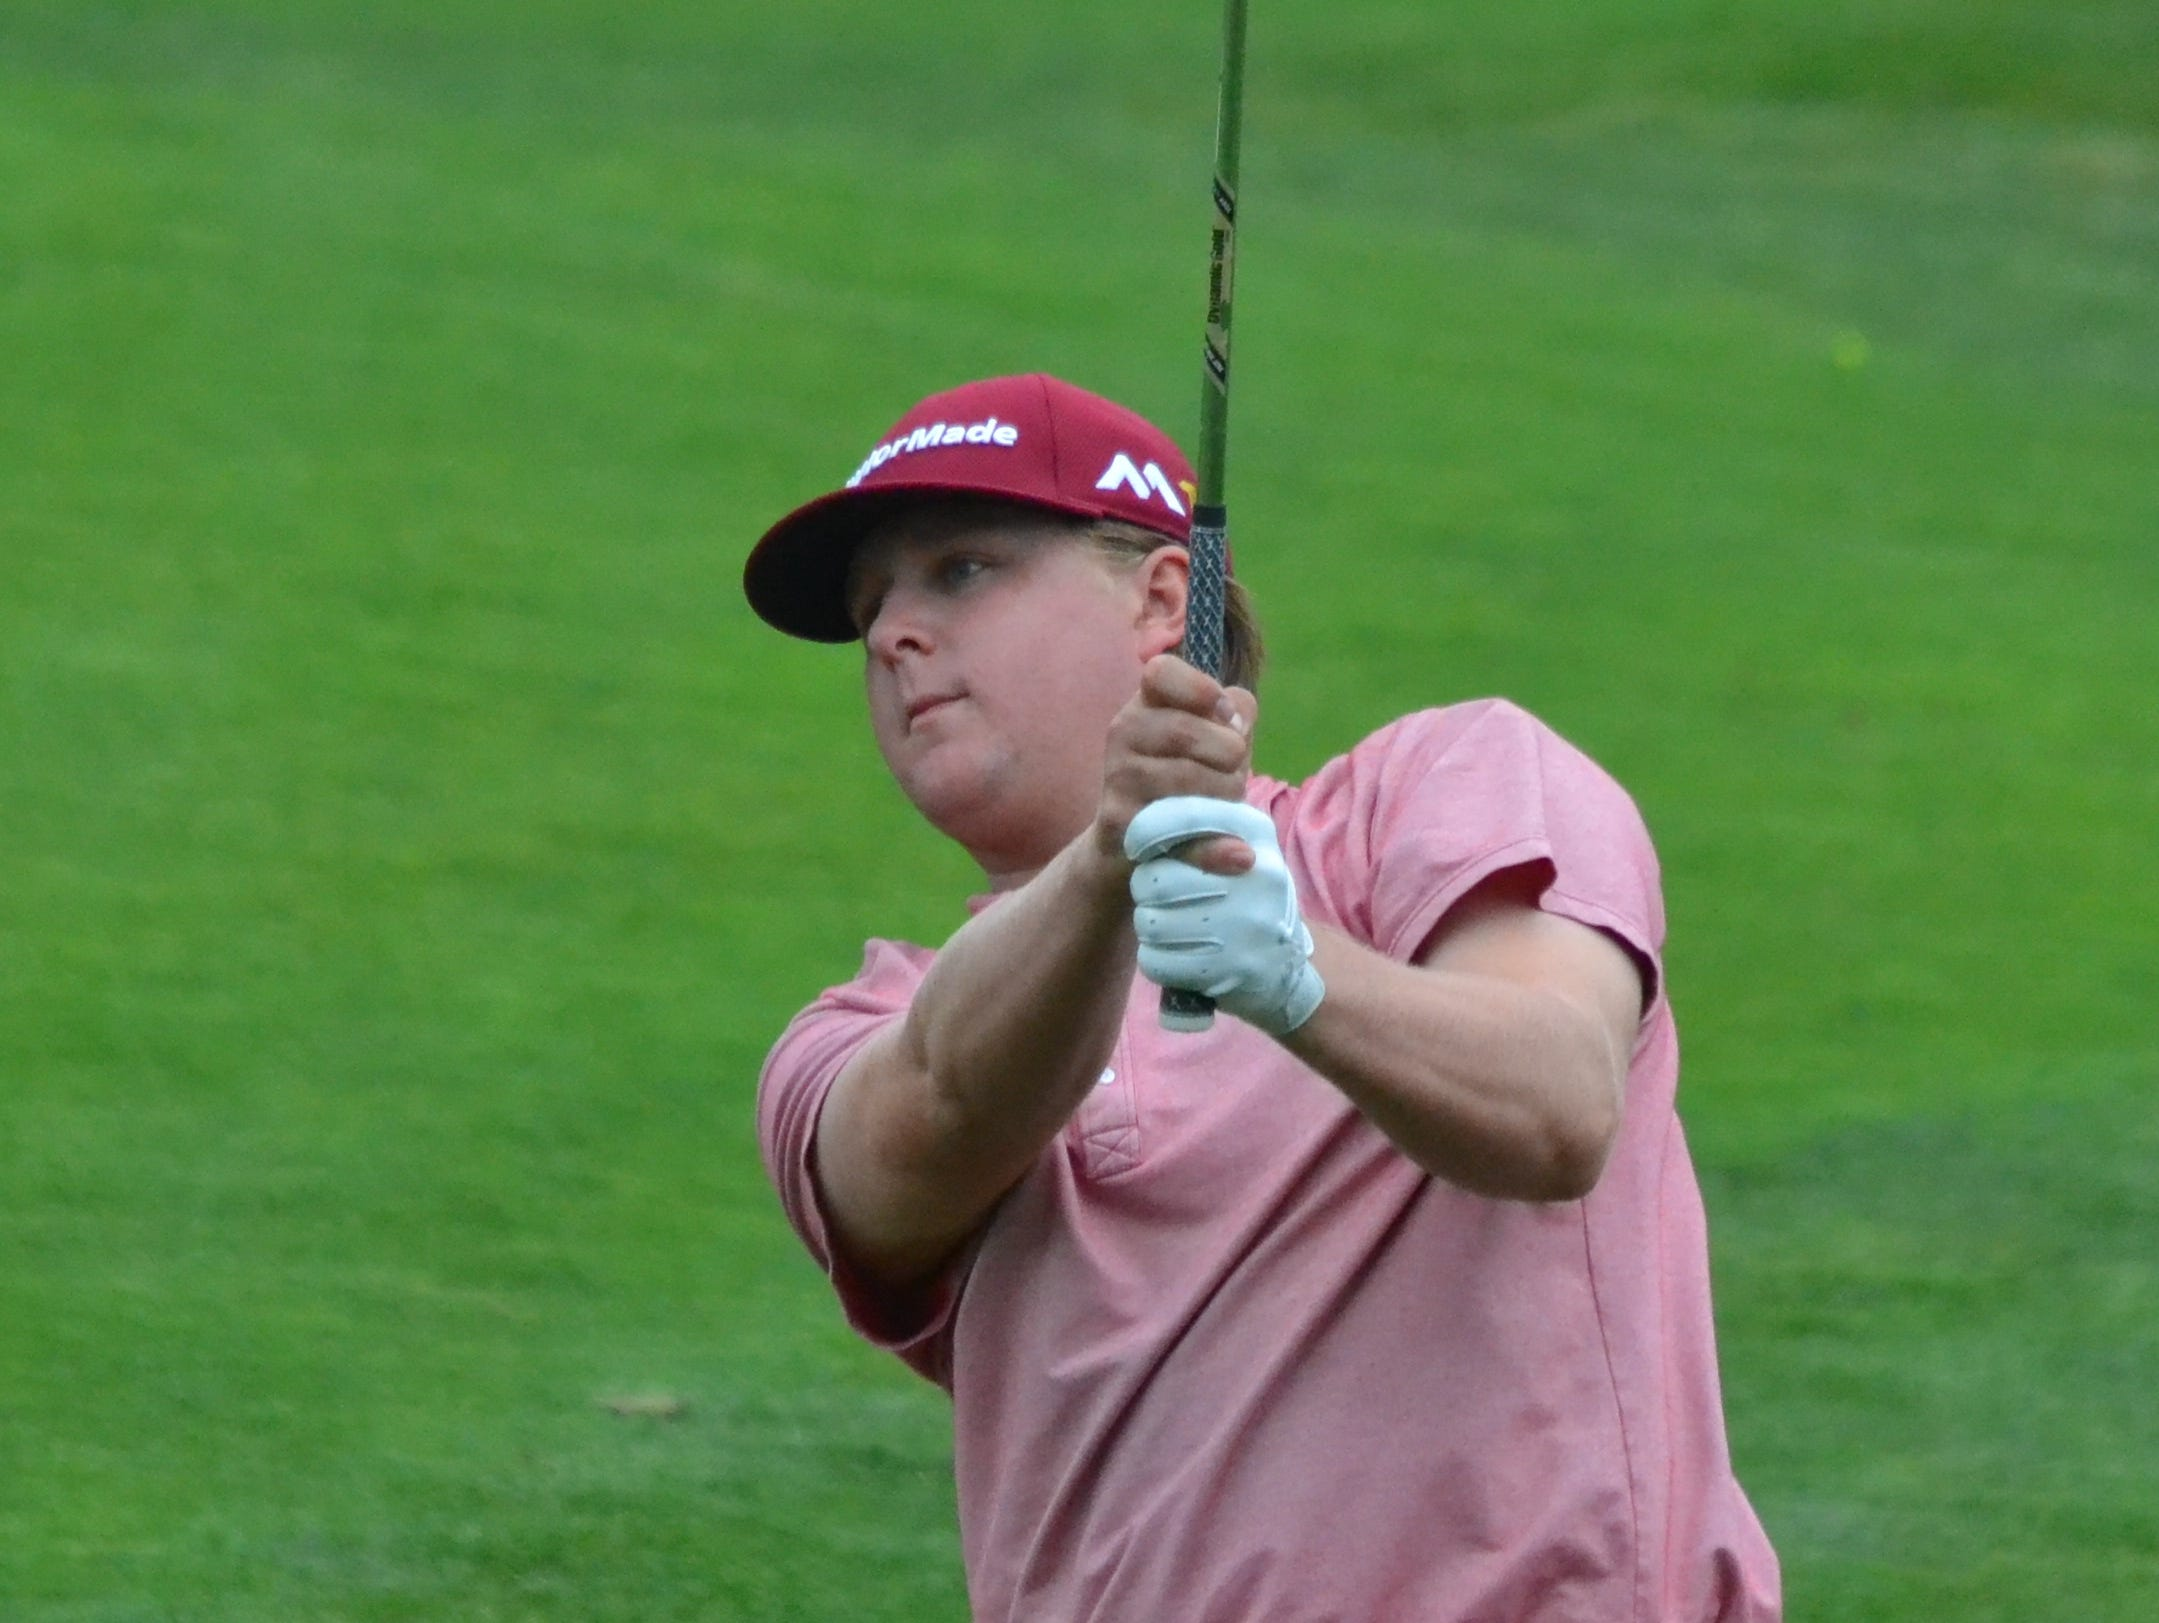 Old Oaks assistant Peter Ballo finished in fourth place at the National Car Rental Met Assistant Championship Wednesday at Bethpage State Park. He earned an invitation to this fall's national tournament in Florida.